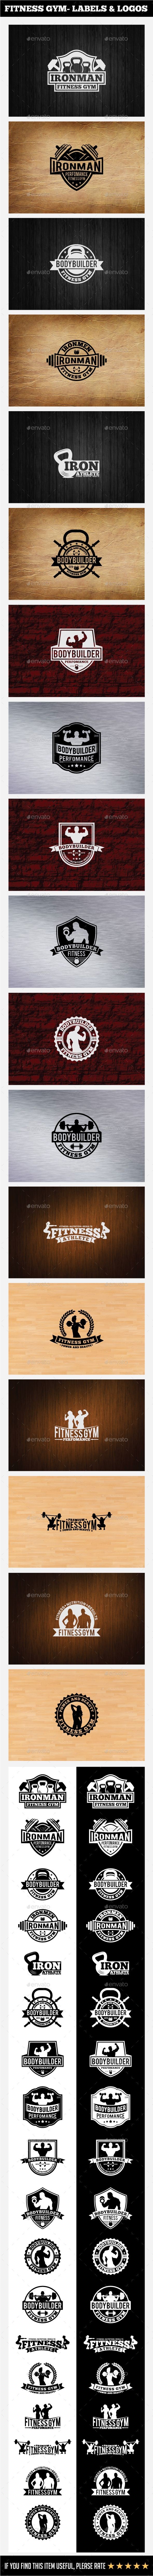 Fitness Gym - Labels & Logos - Badges & Stickers Web Elements                                                                                                                                                                                 More